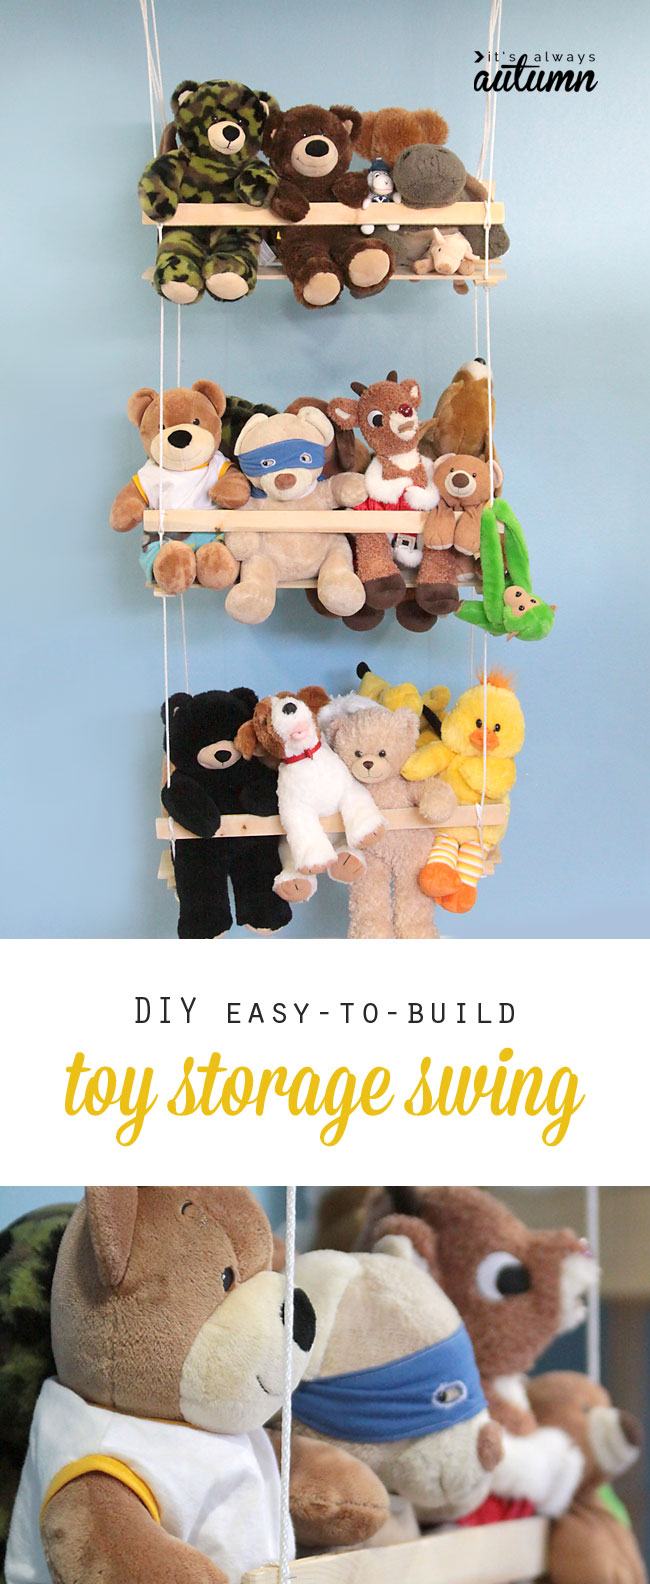 30  amazing diy toy storage ideas for crafty moms – page 2 of 2 ...